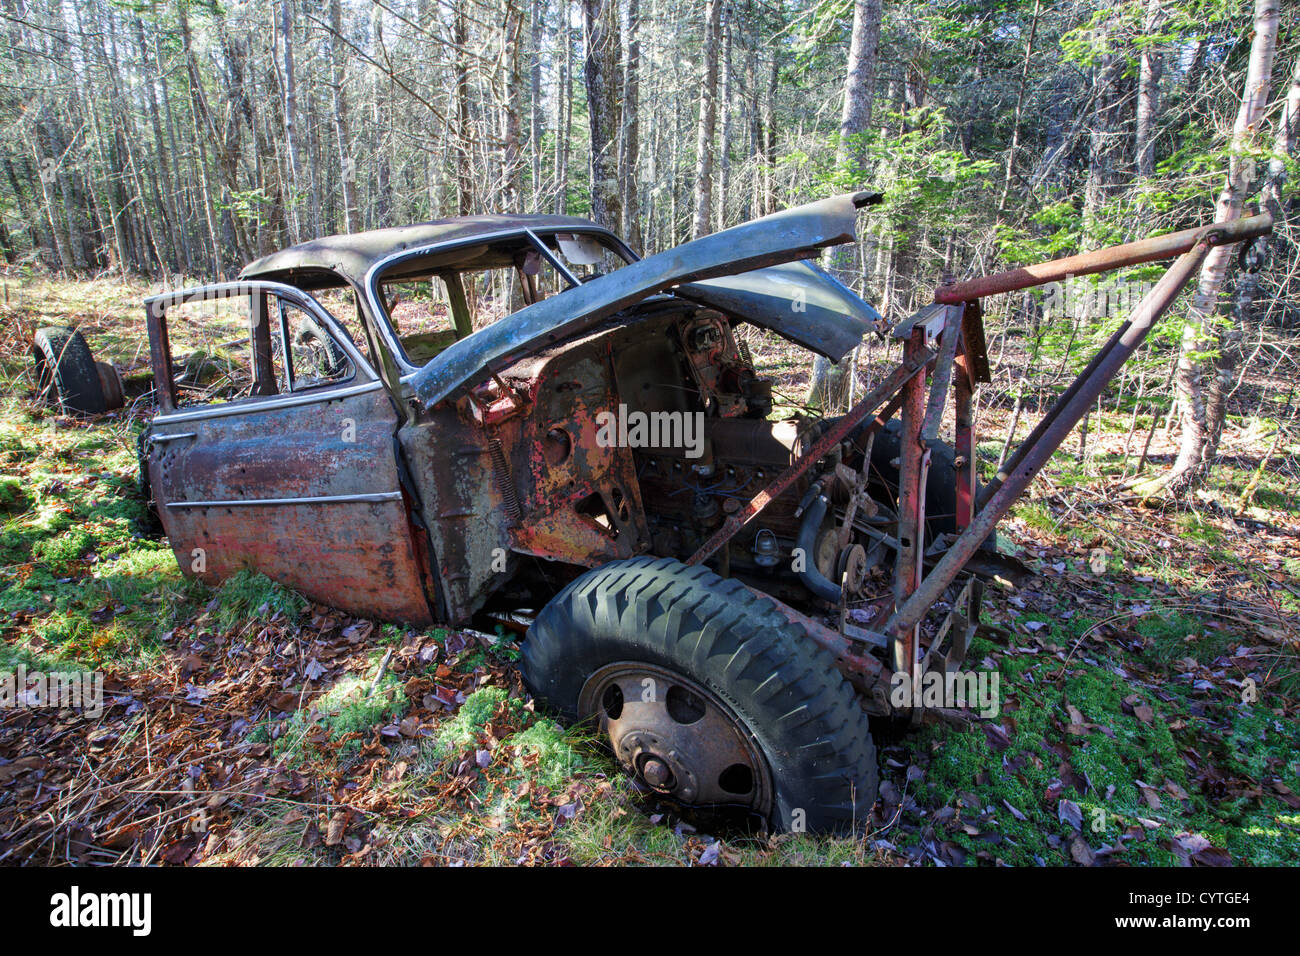 Abandoned 1950s Chevrolet in forest near Elbow Pond in Woodstock, New Hampshire USA - Stock Image